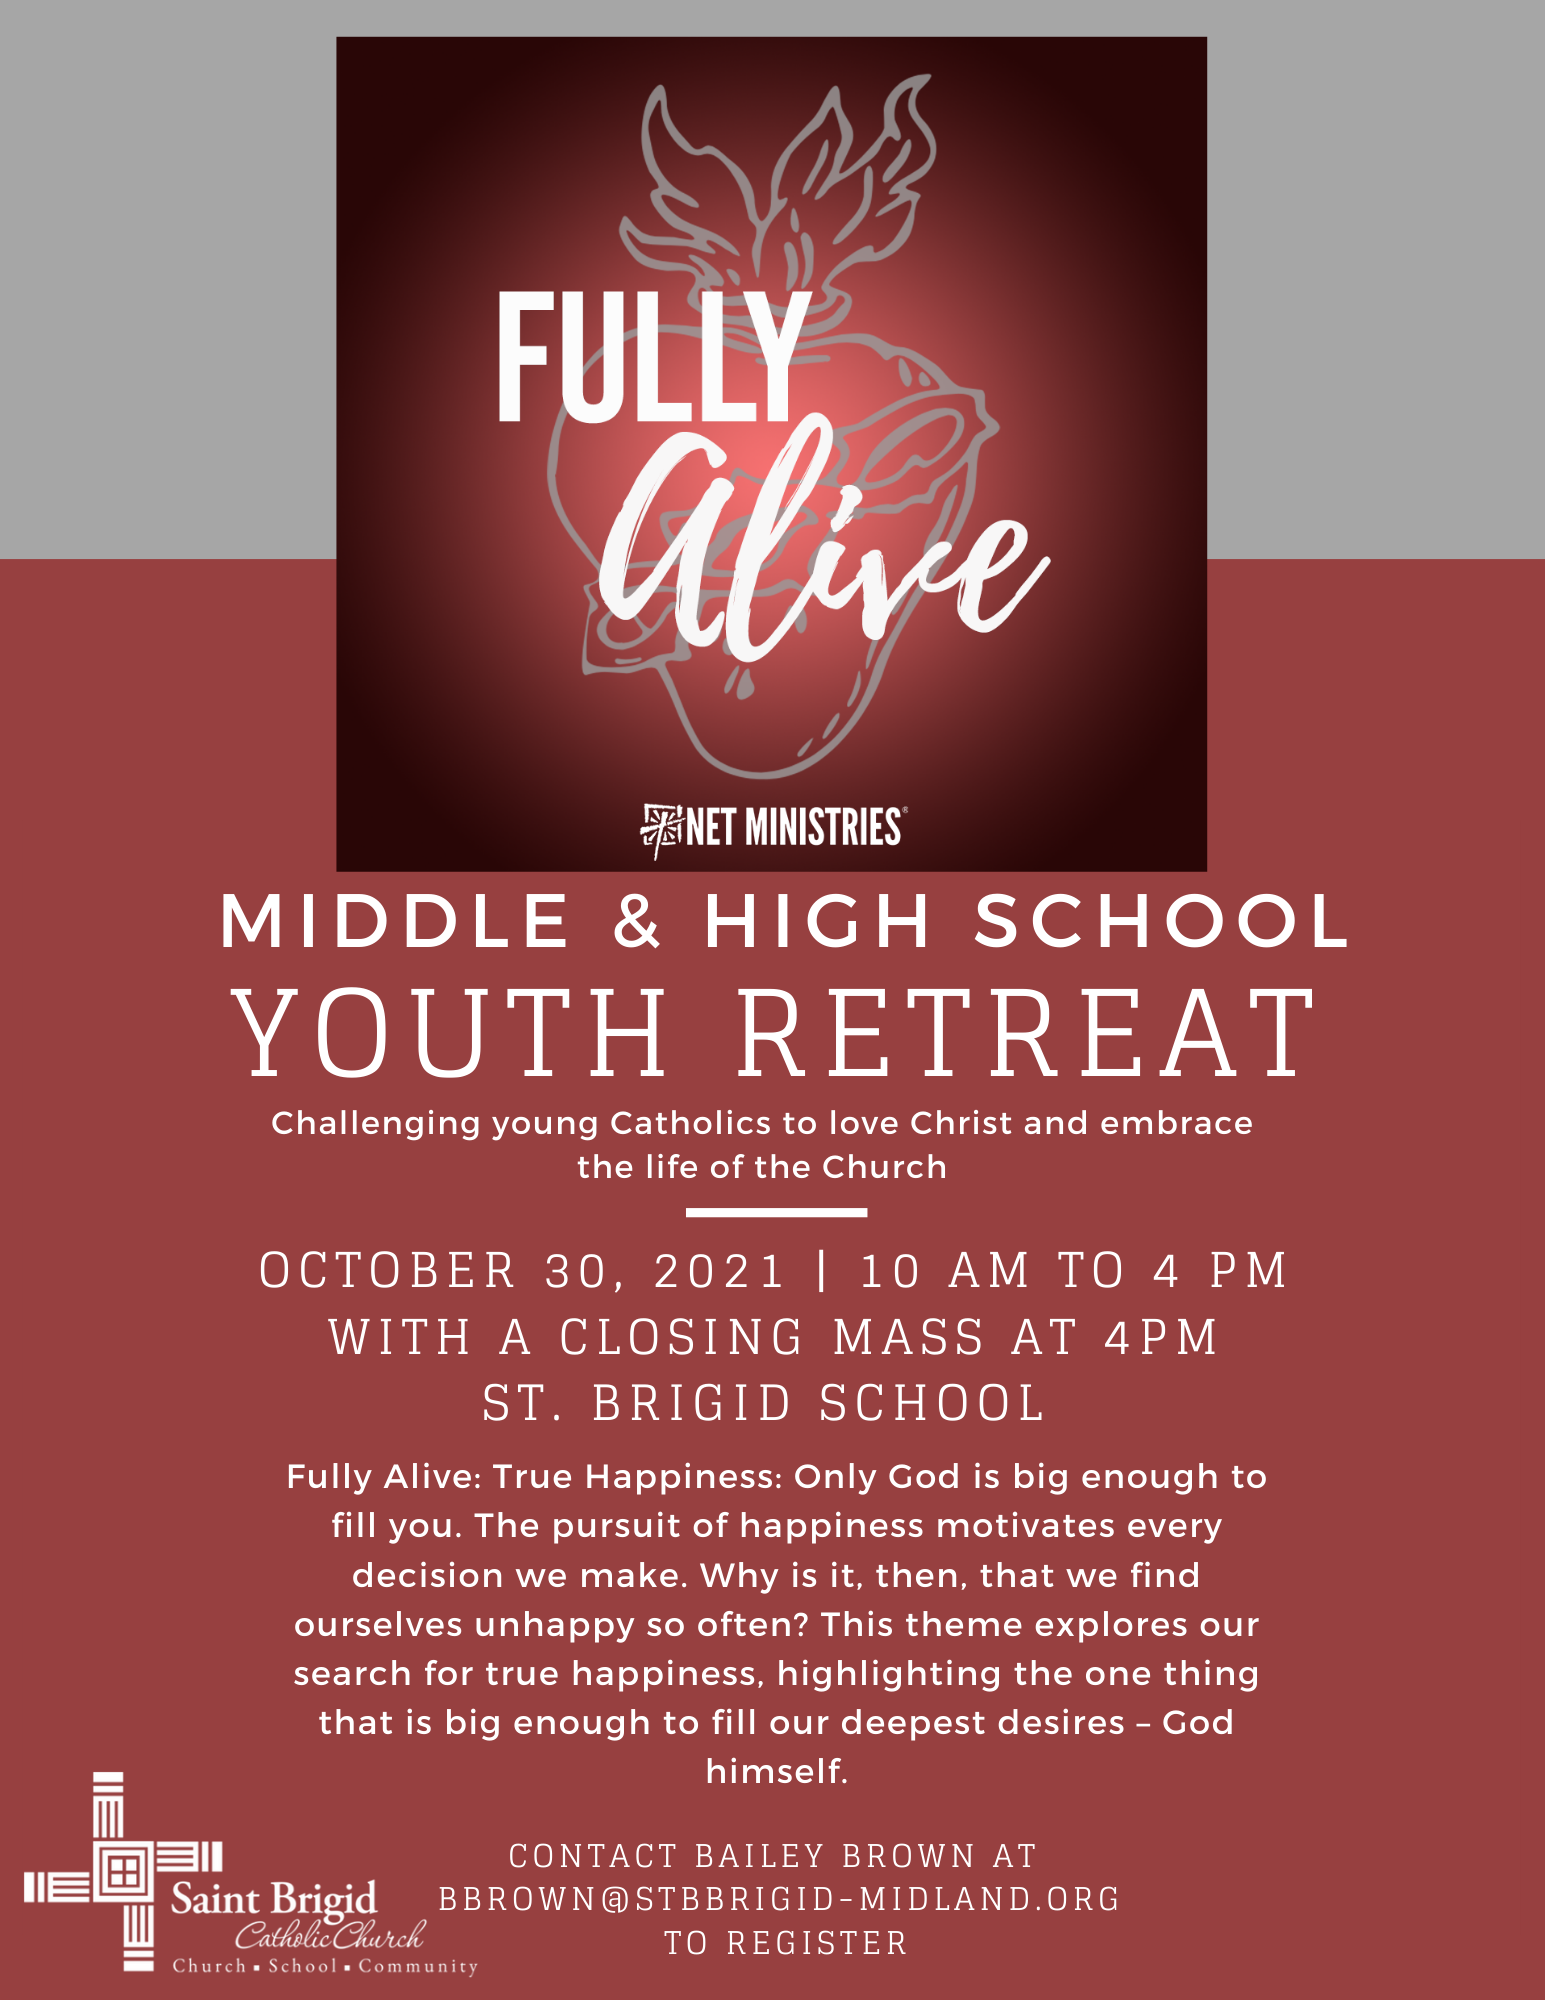 N.E.T. Ministries Youth Retreat-October 30, 2021